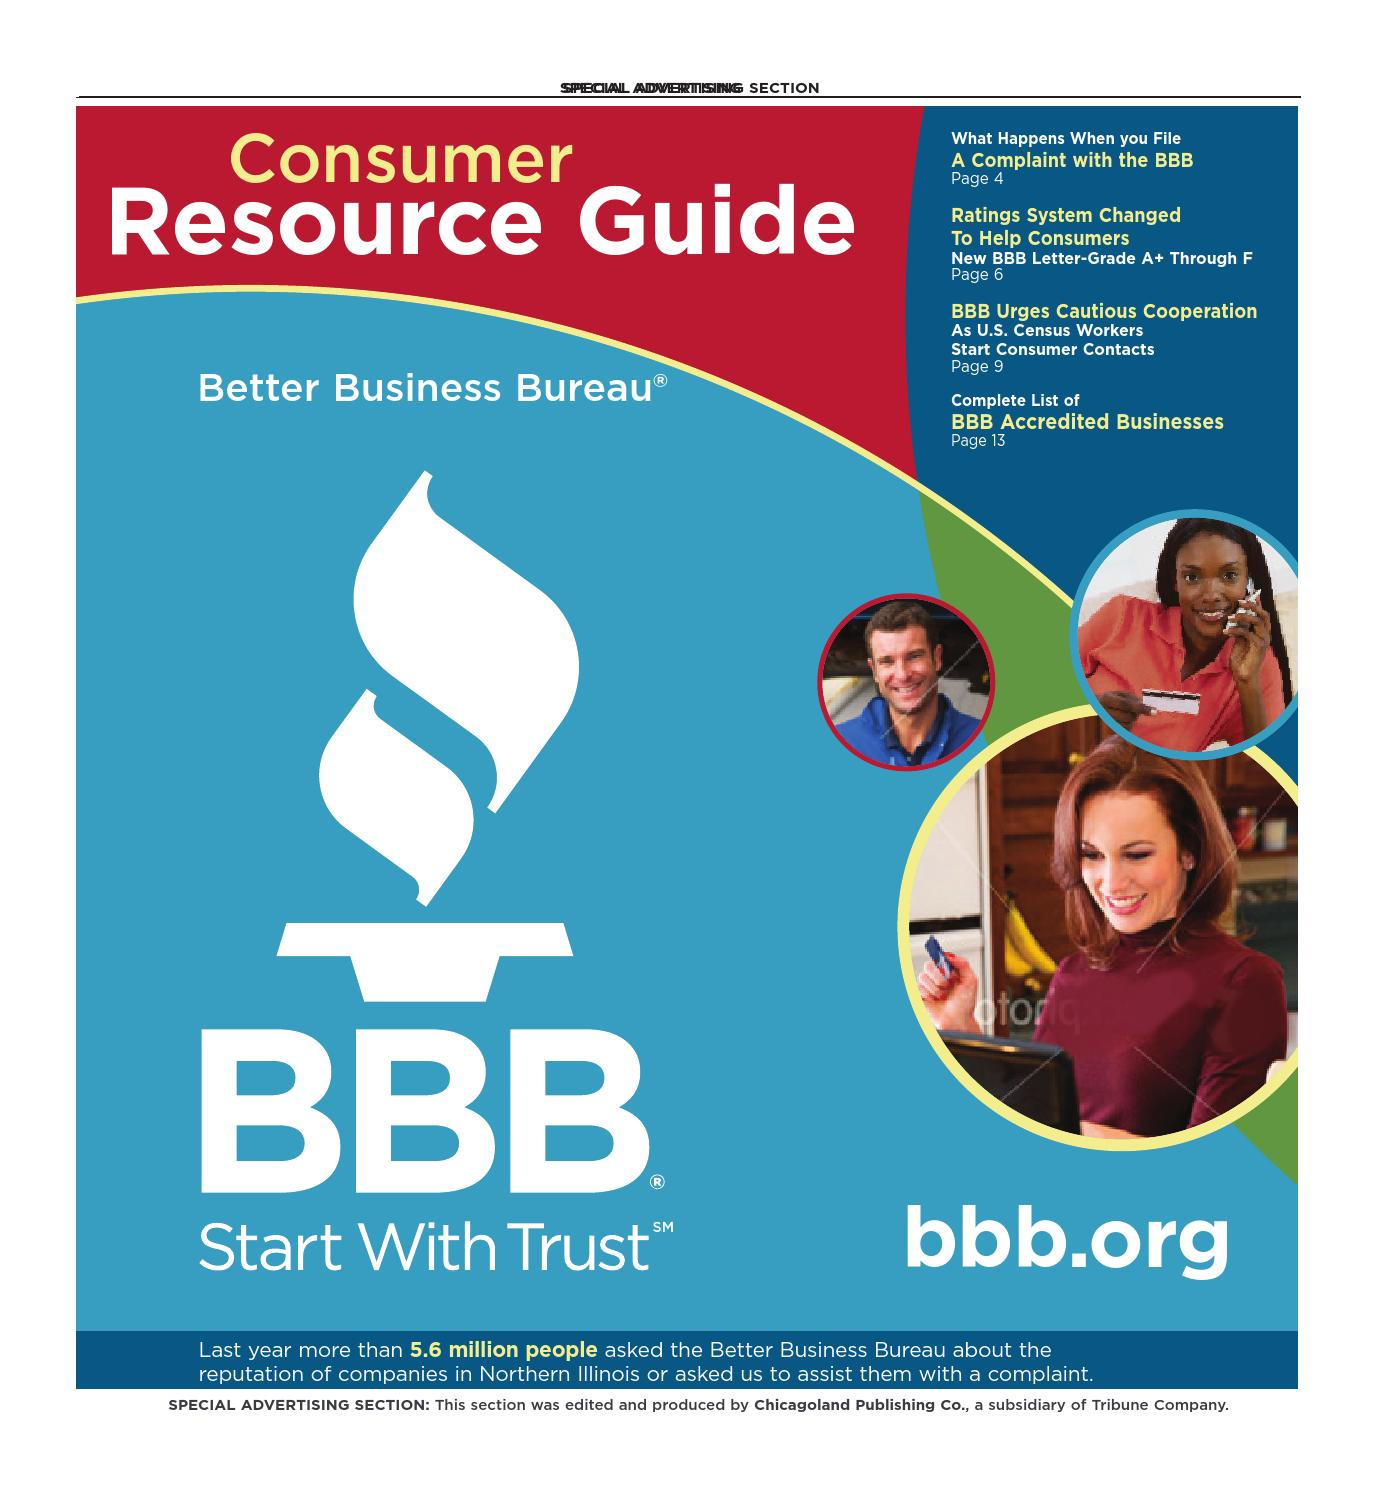 d272f0a1dee Consumer Resource Guide - Fall 2009 by bbbchicago - issuu